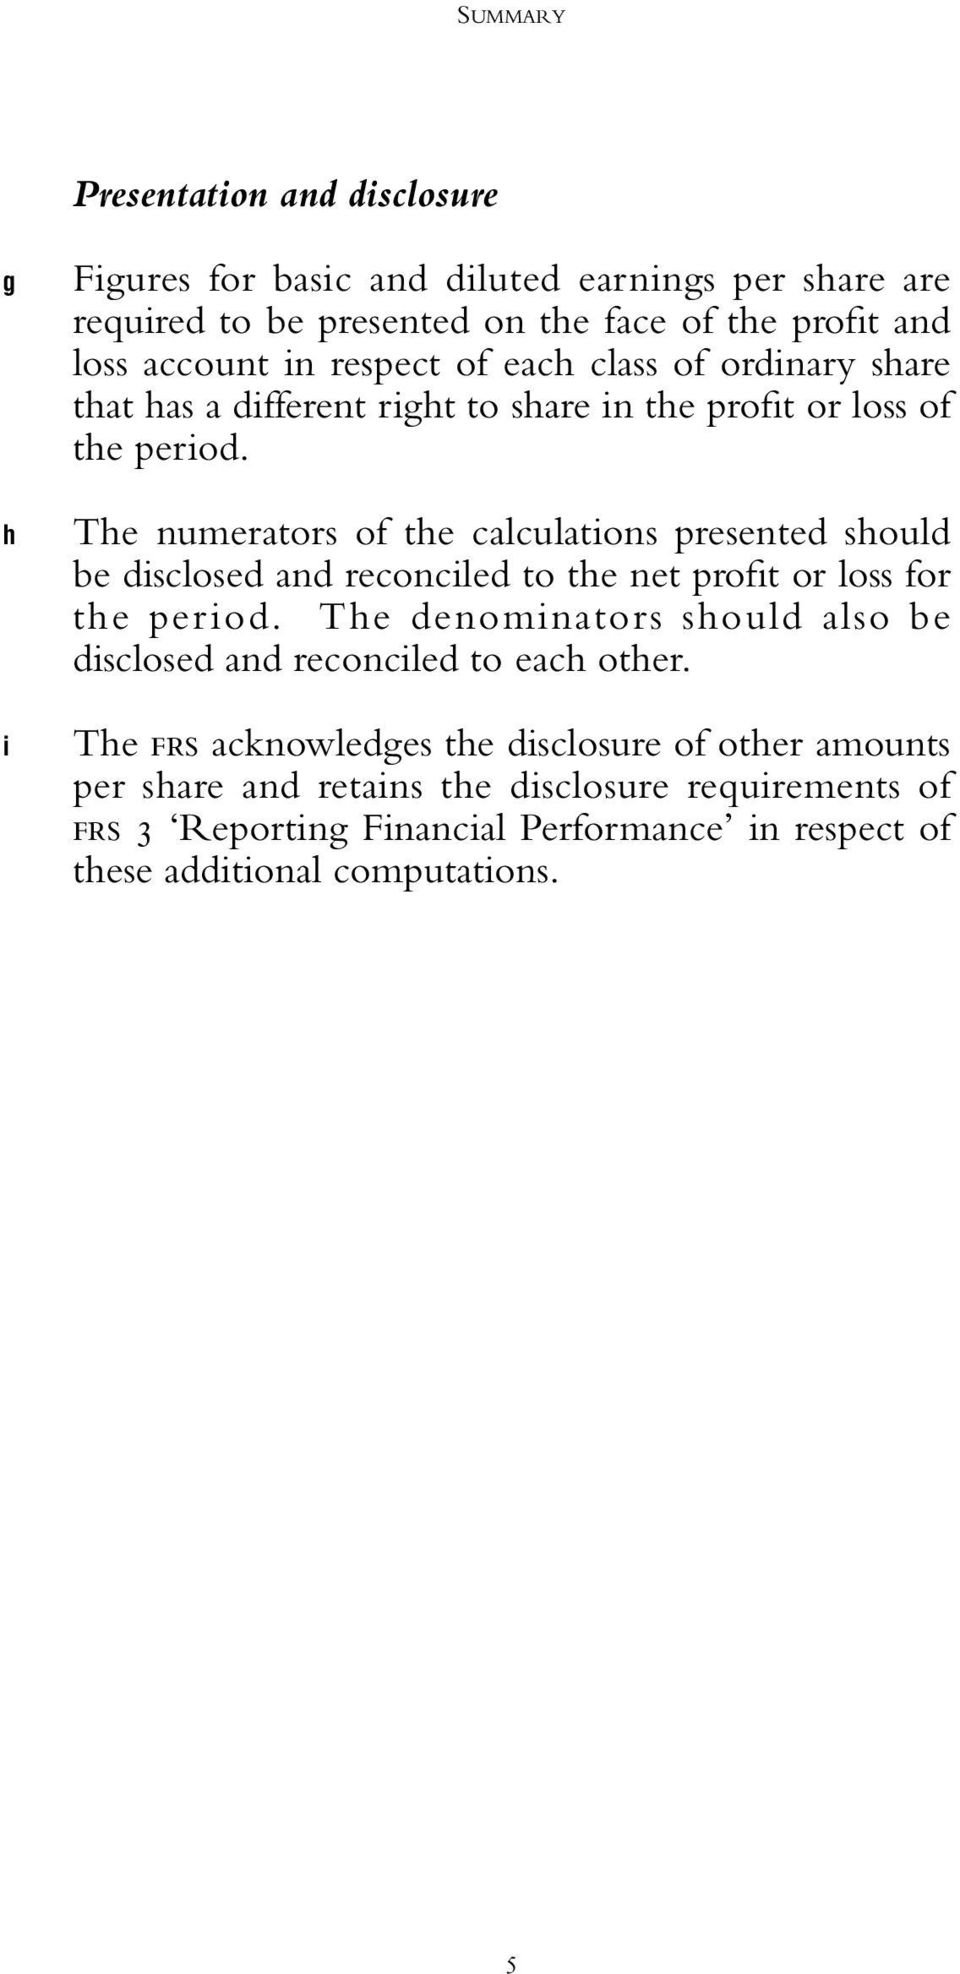 The numerators of the calculations presented should be disclosed and reconciled to the net profit or loss for the period.